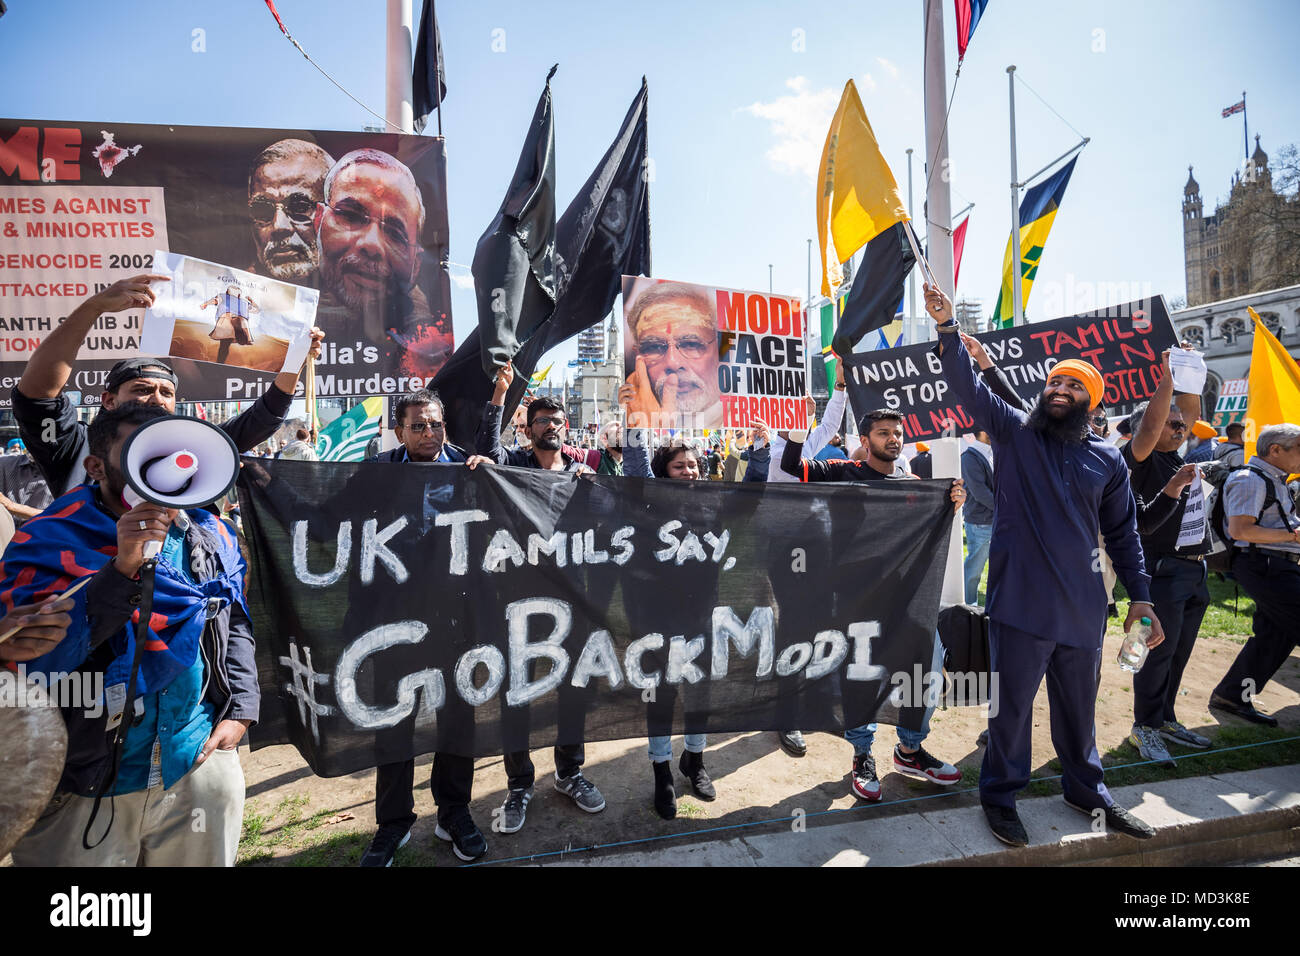 London, UK. 18th April, 2018. Mass Anti-Modi protests in Parliament Square against Narendra Modi, the current serving Prime Minister of India, who is visiting London as part of the Commonwealth Heads of Government summit. © Guy Corbishley/Alamy Live News - Stock Image